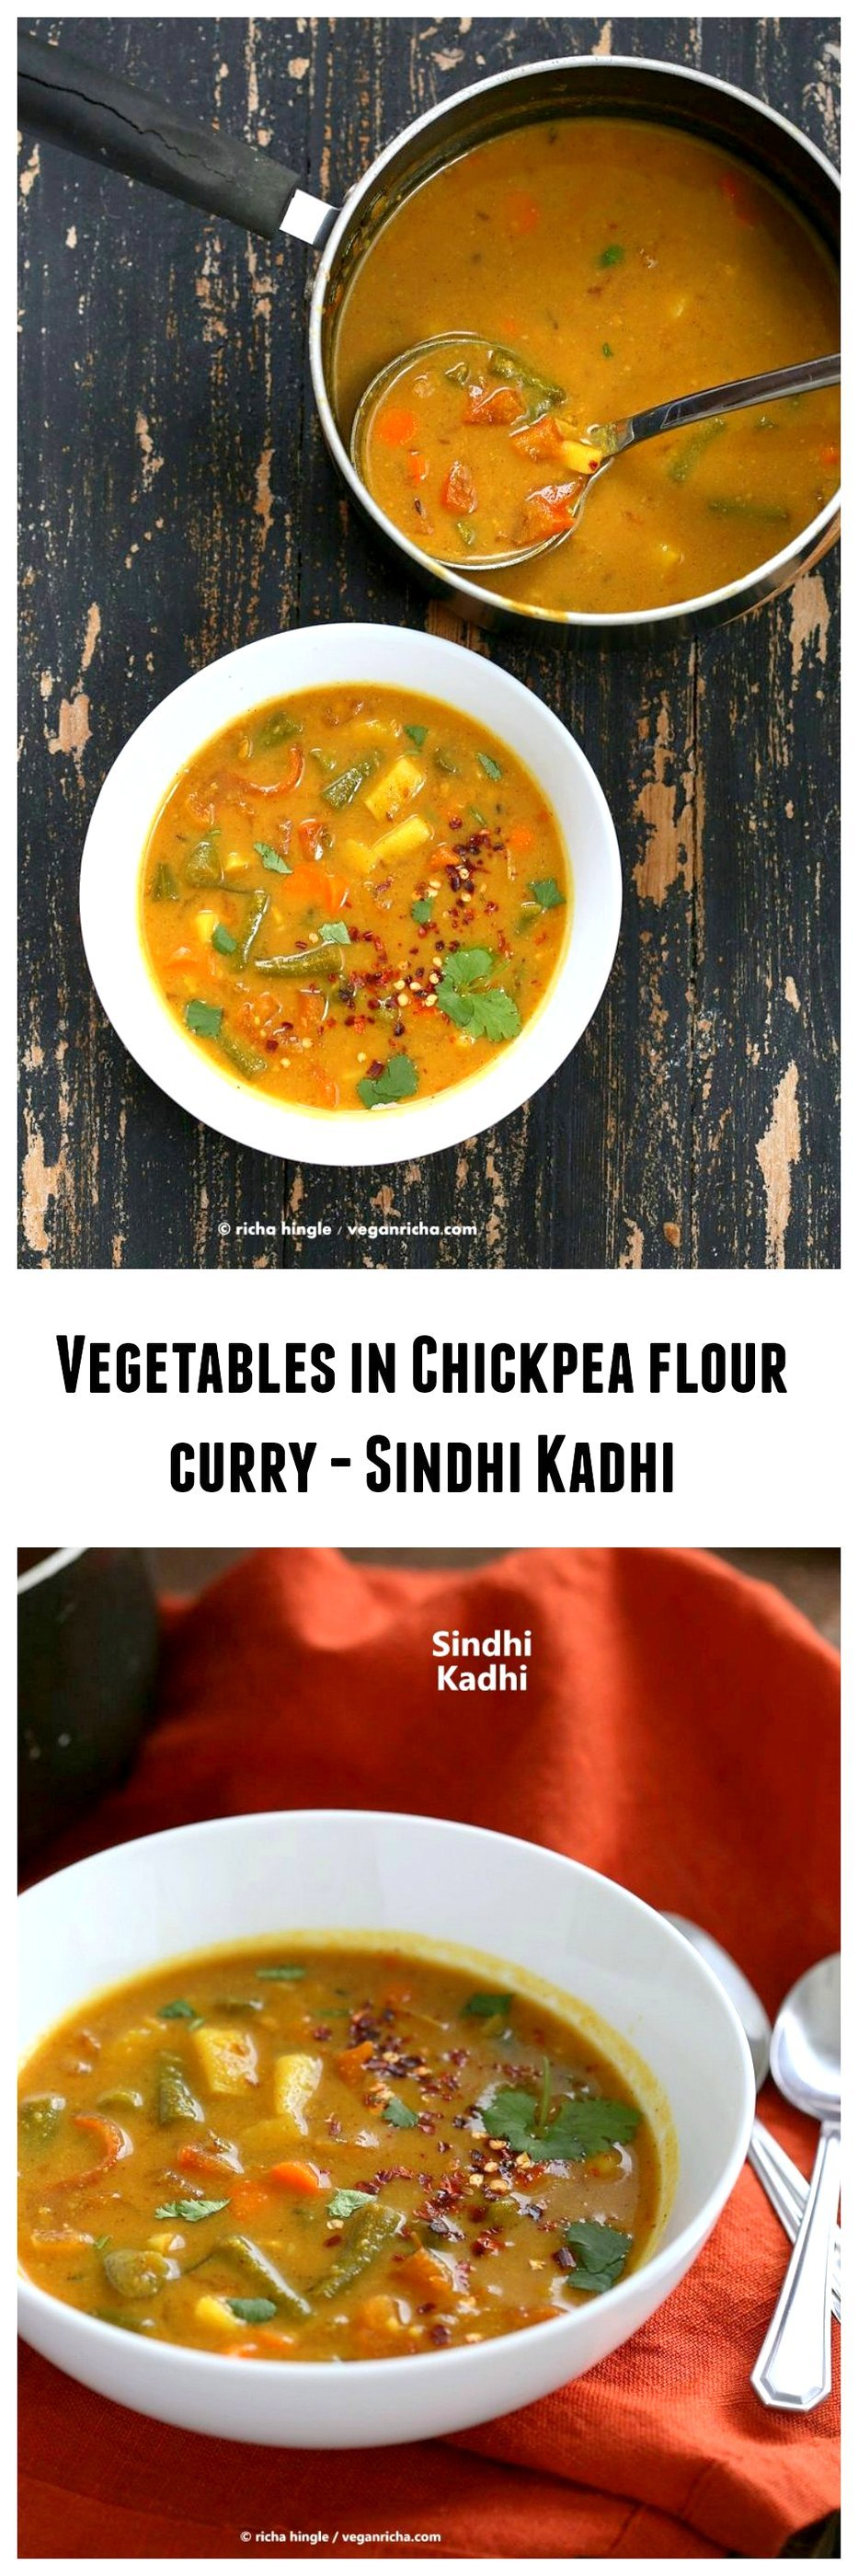 Vegetables in Chickpea flour Sauce - Sindhi Kadhi | VeganRicha.com #vegan #Indian #main #soyfree #glutenfree #recipe #chickpeaflour